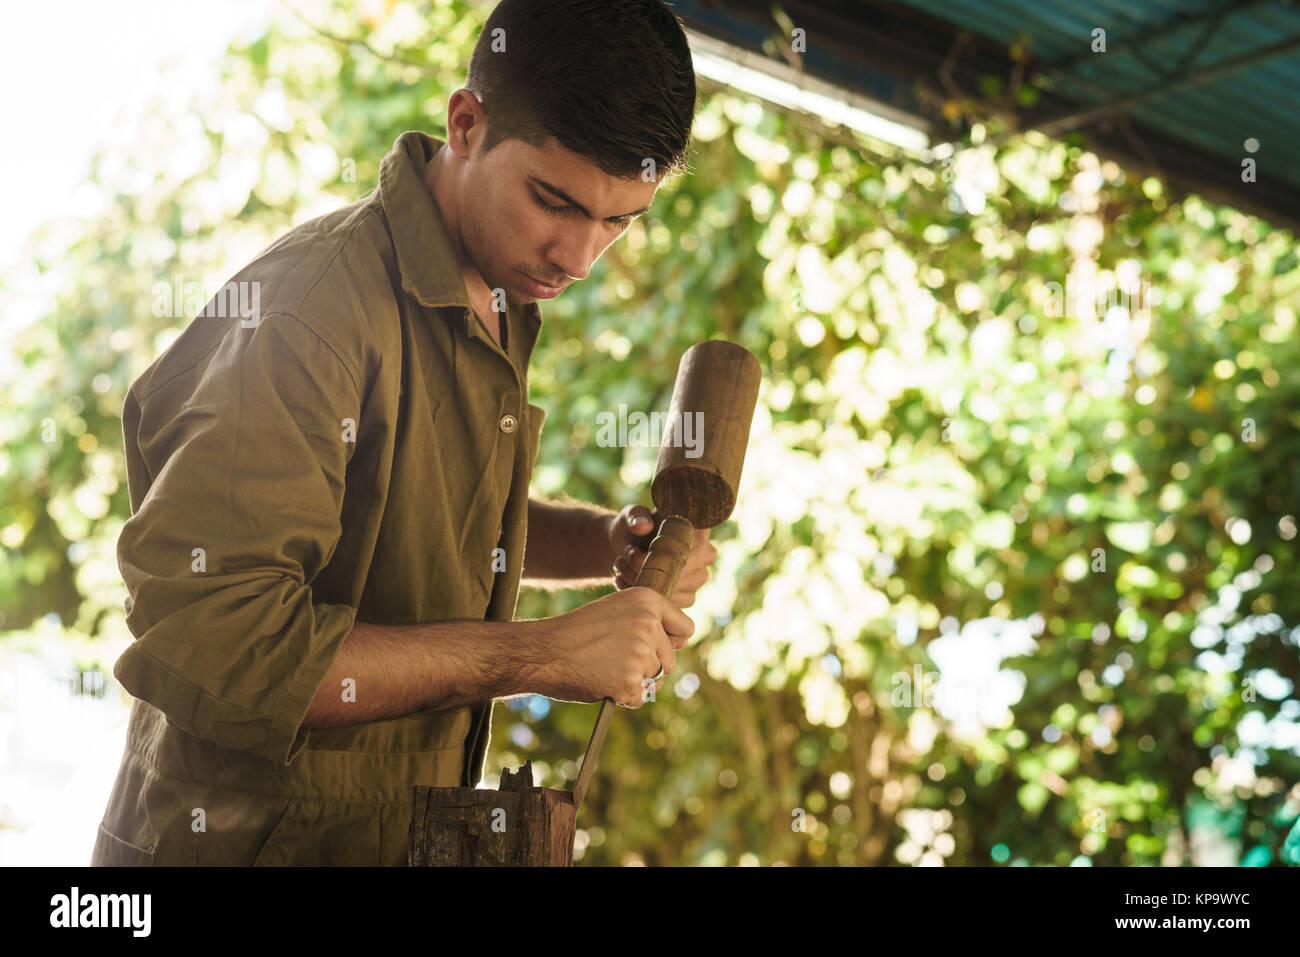 Young Sculptor Artist Working And Sculpting Wood Statue-1 - Stock Image